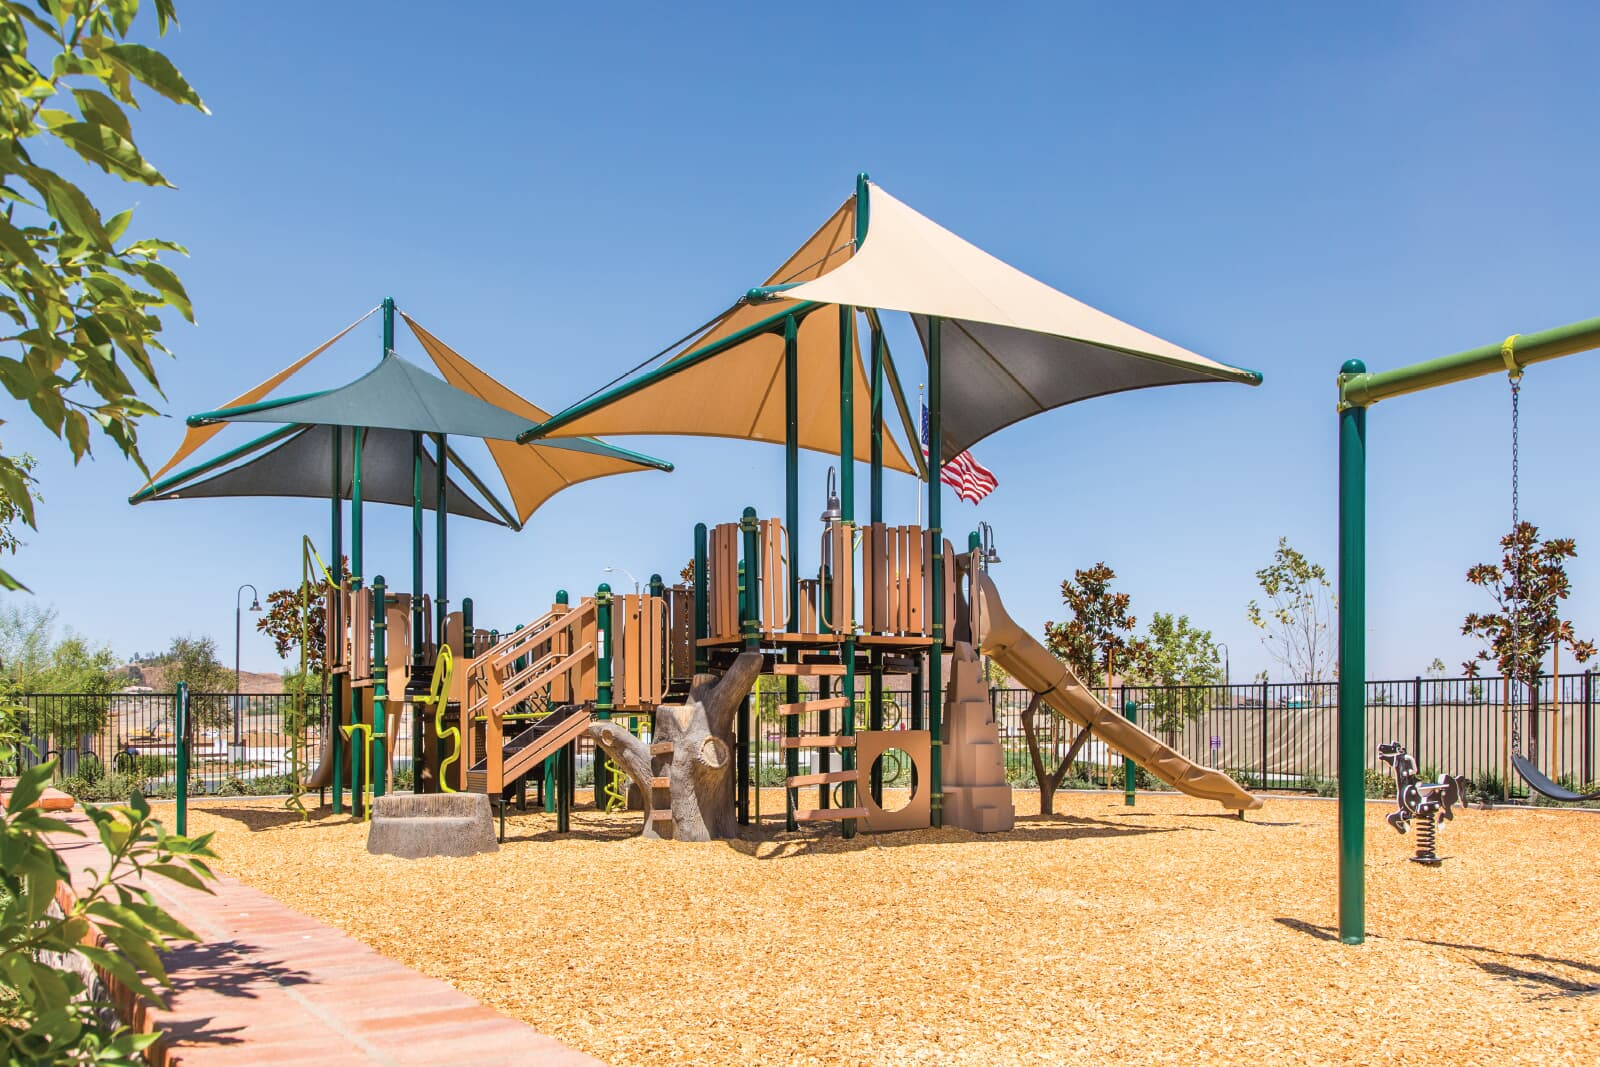 The Ranch House Playground | Audie Murphy Ranch in Menifee, CA | Brookfield Residential